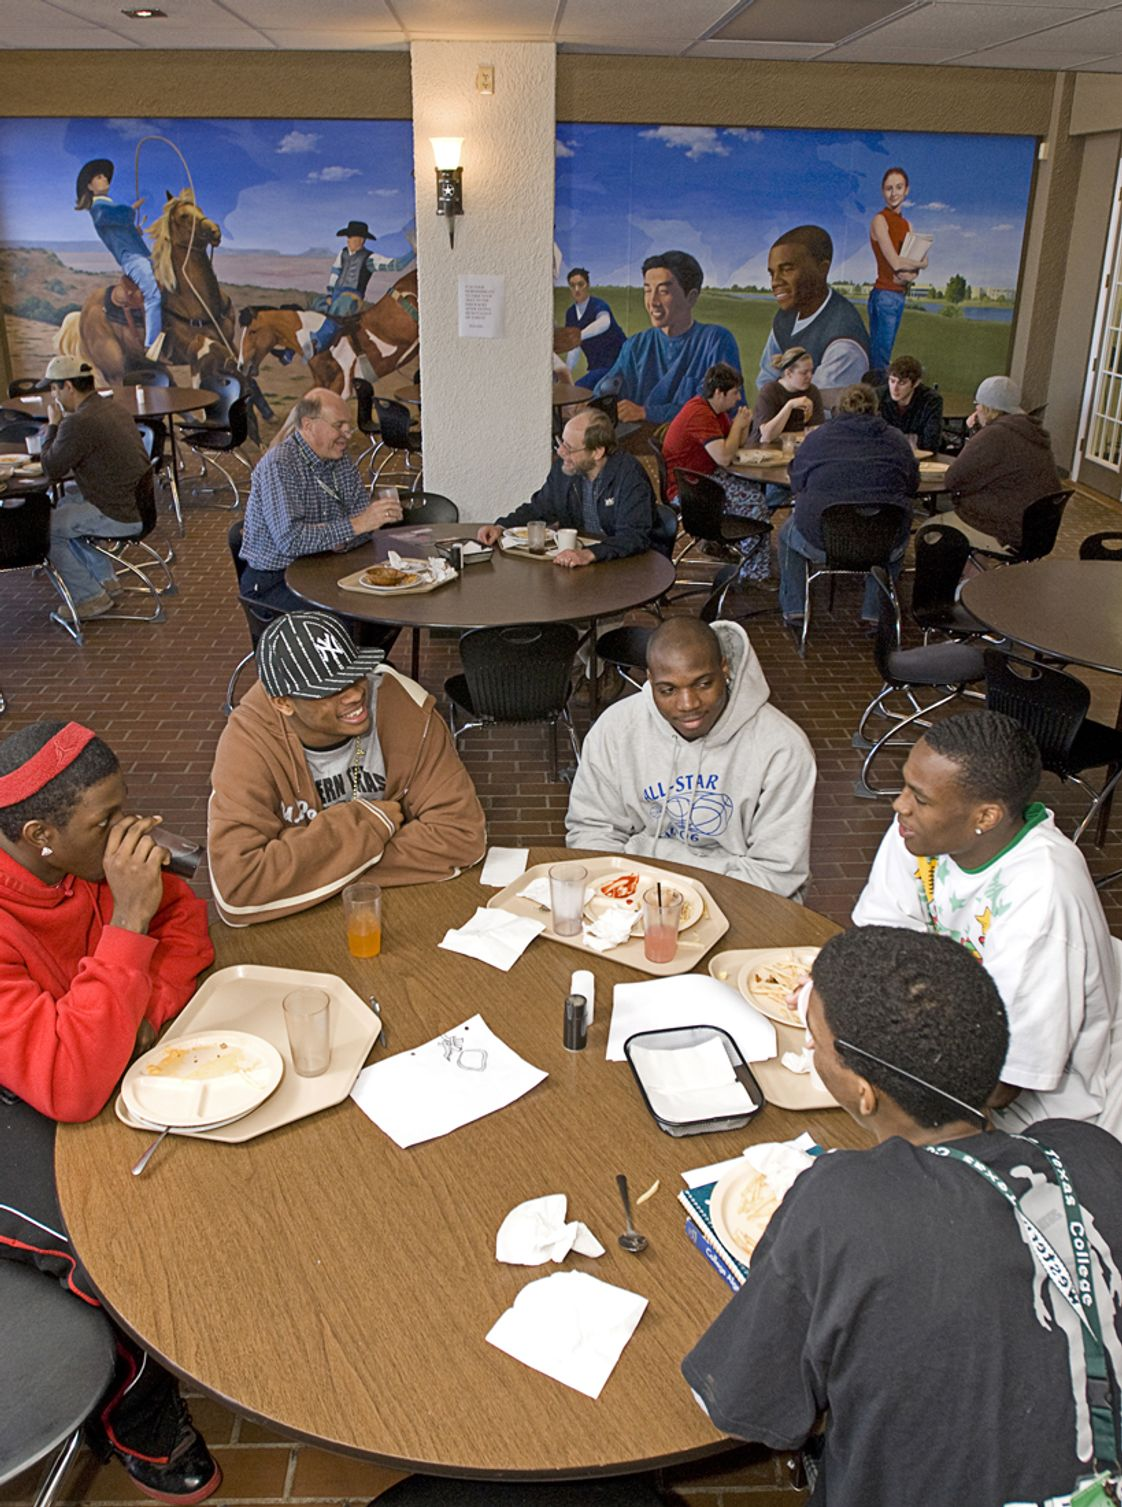 Western Texas College Photo - The Dining Hall is located in the Student Center.